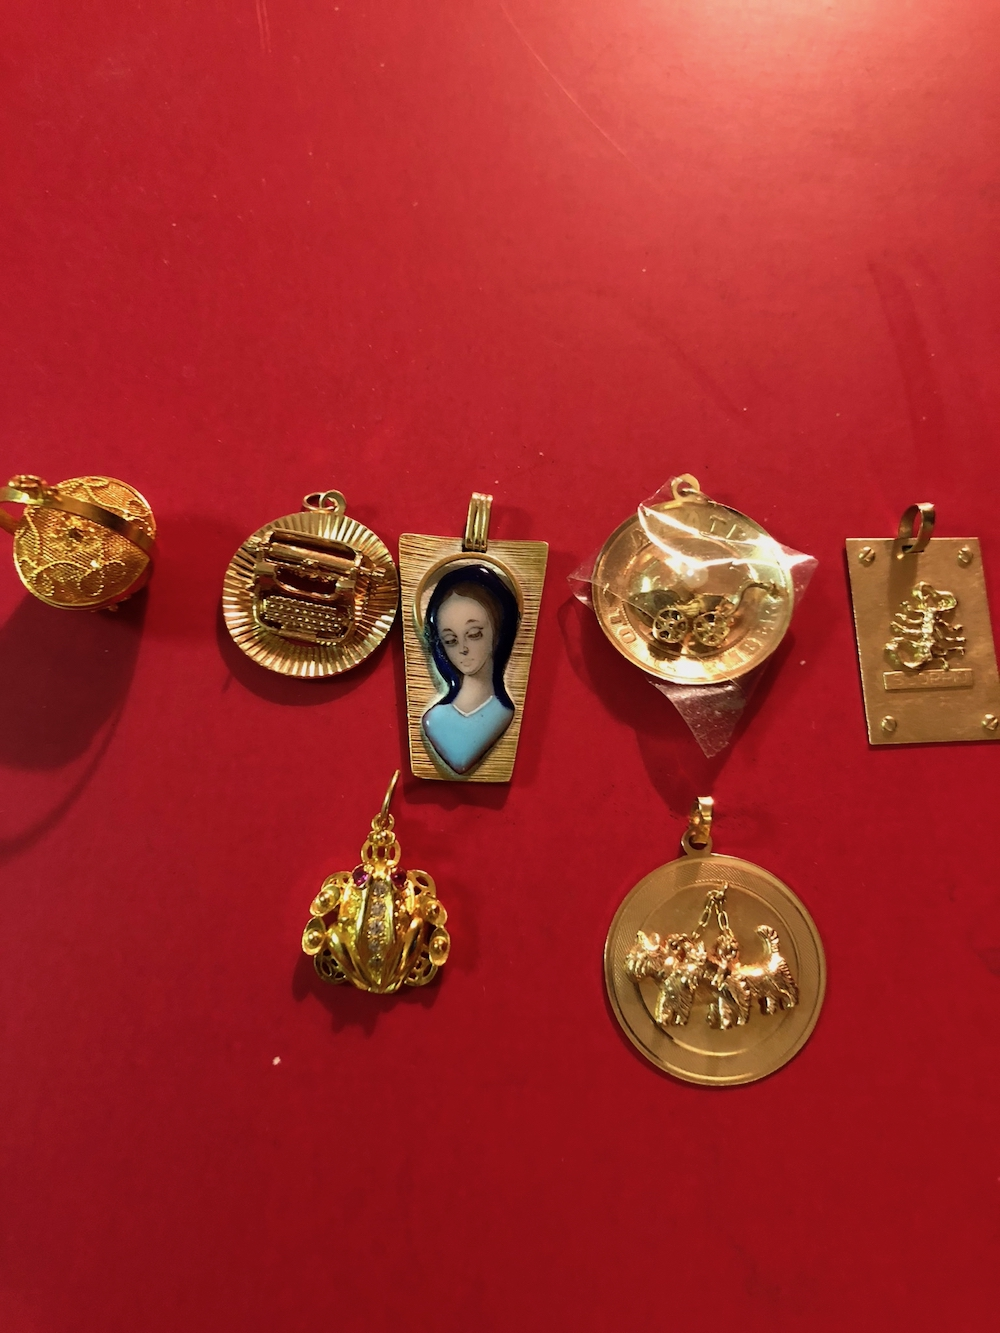 14kt Gold or Higher Charms